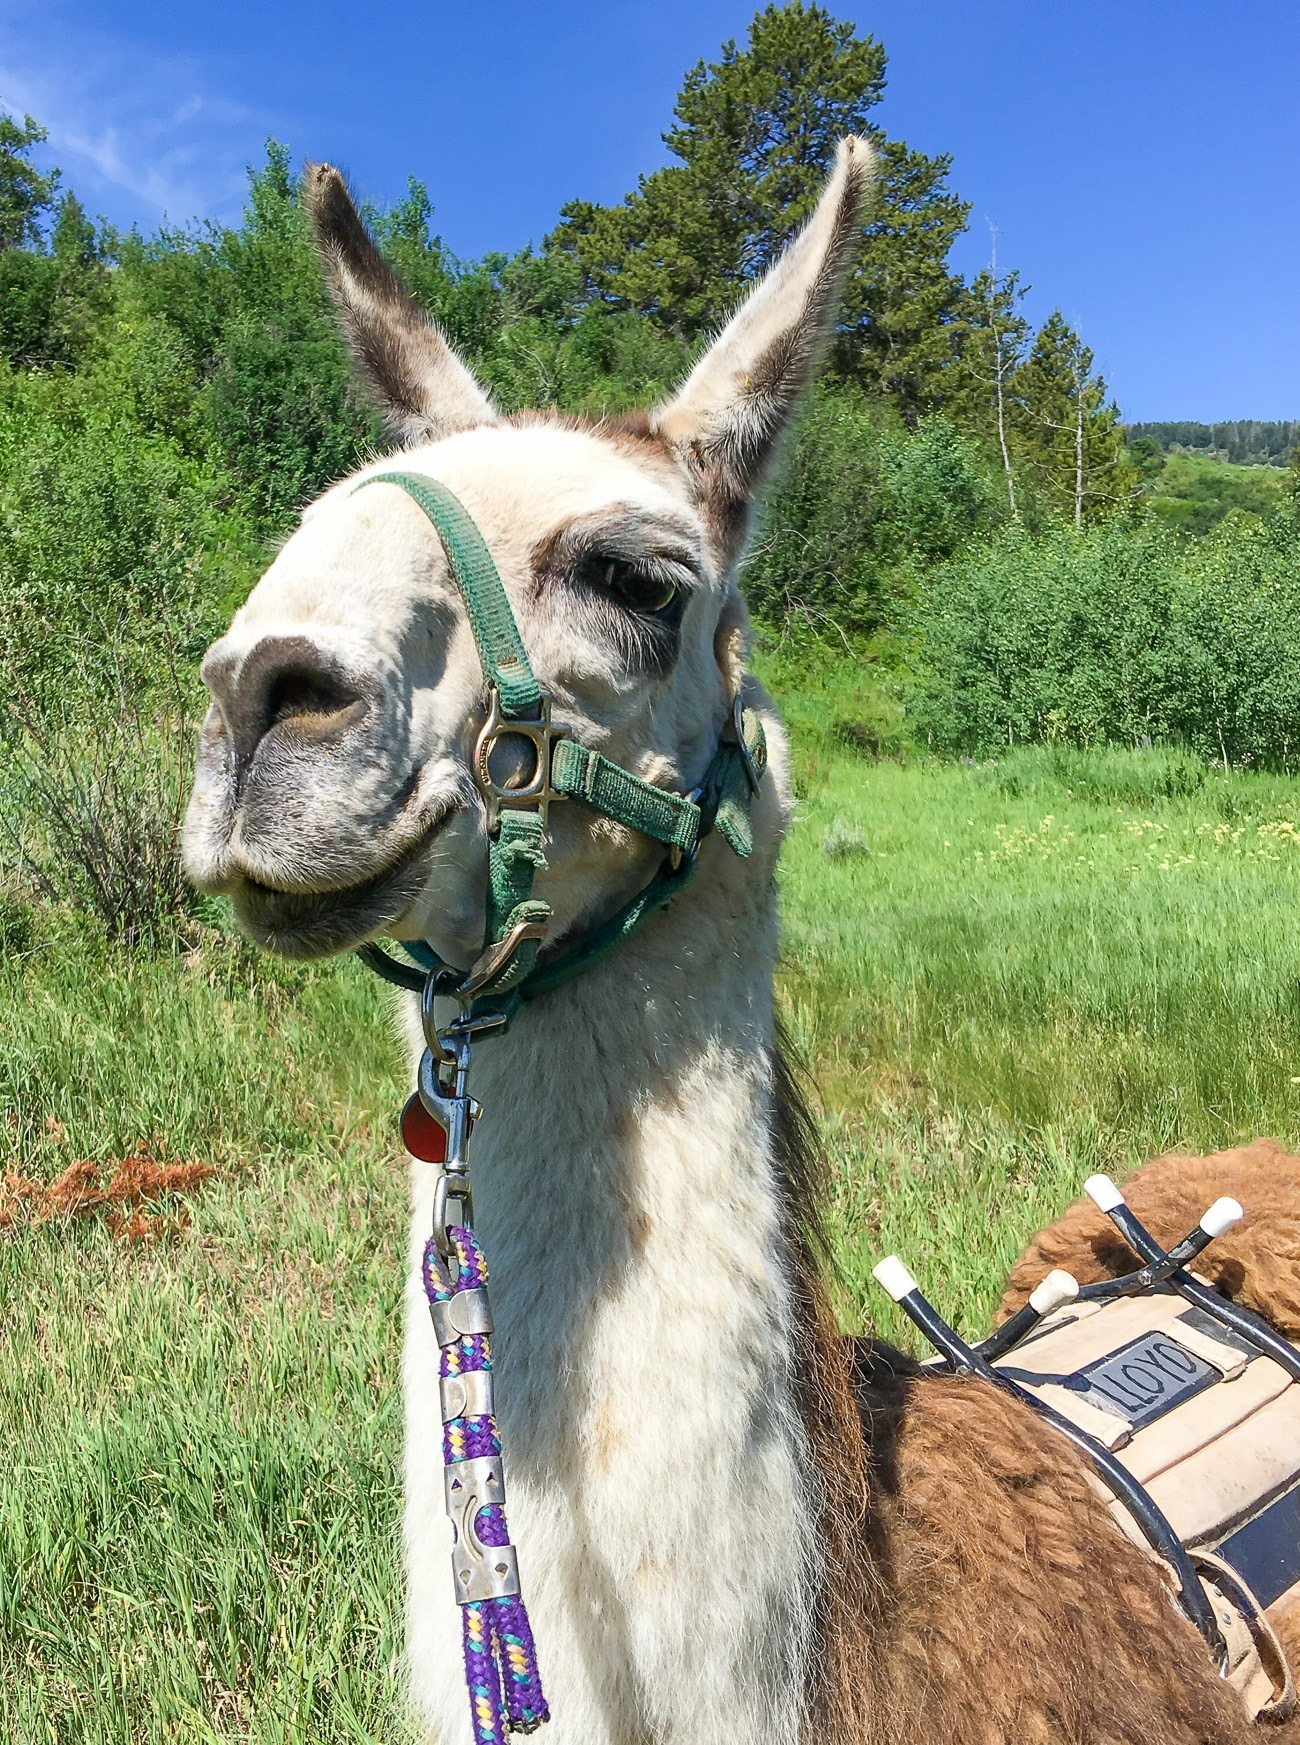 We went llama trekking with Lloyd the llama in Vail, Colorado with Paragon Guides.